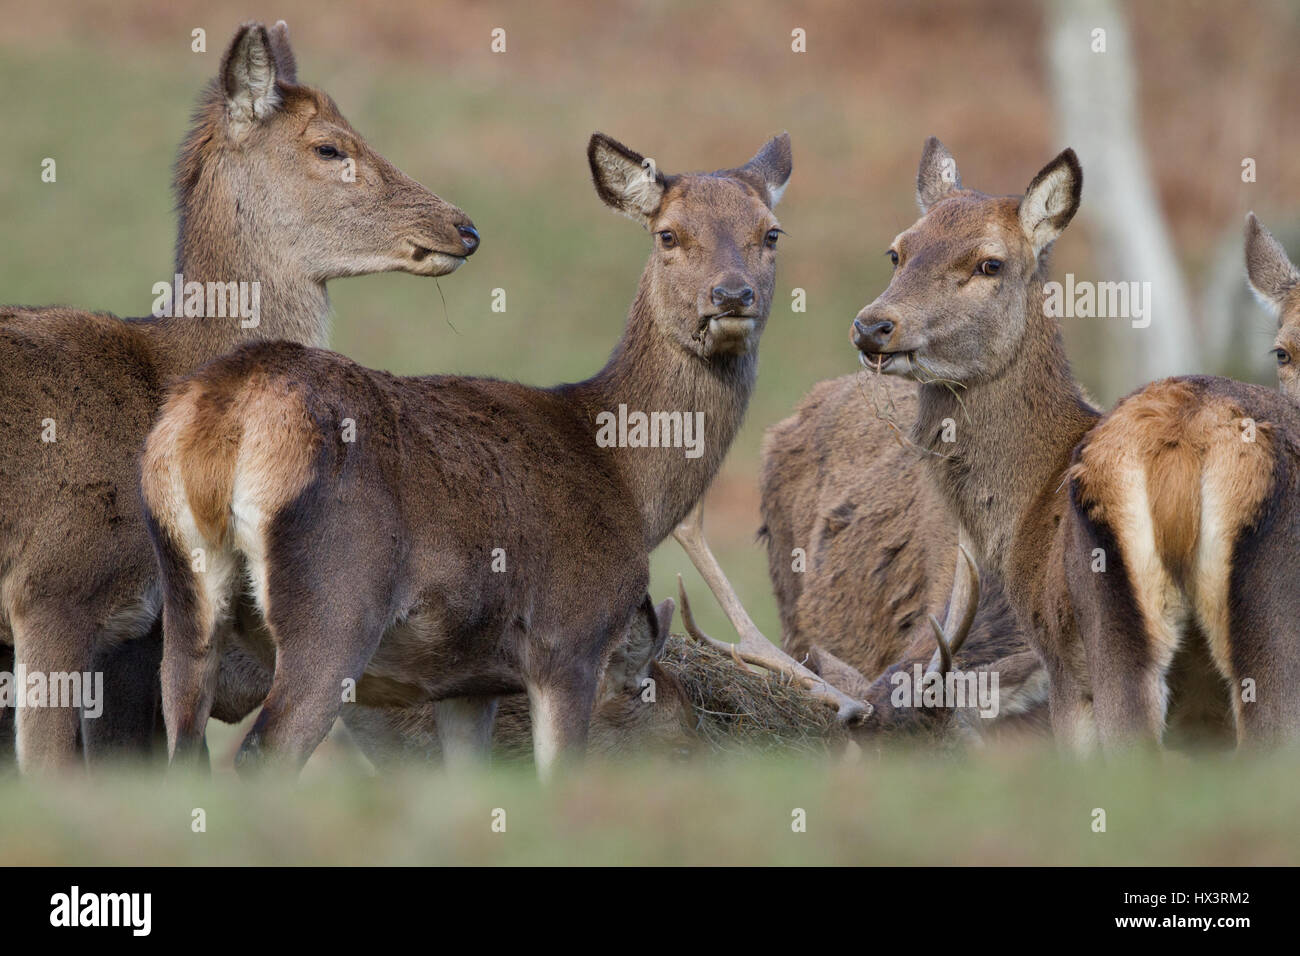 Red Deer in Powis Castle Park,National Trust property, near Welshpool,Powys,Wales, uk - Stock Image